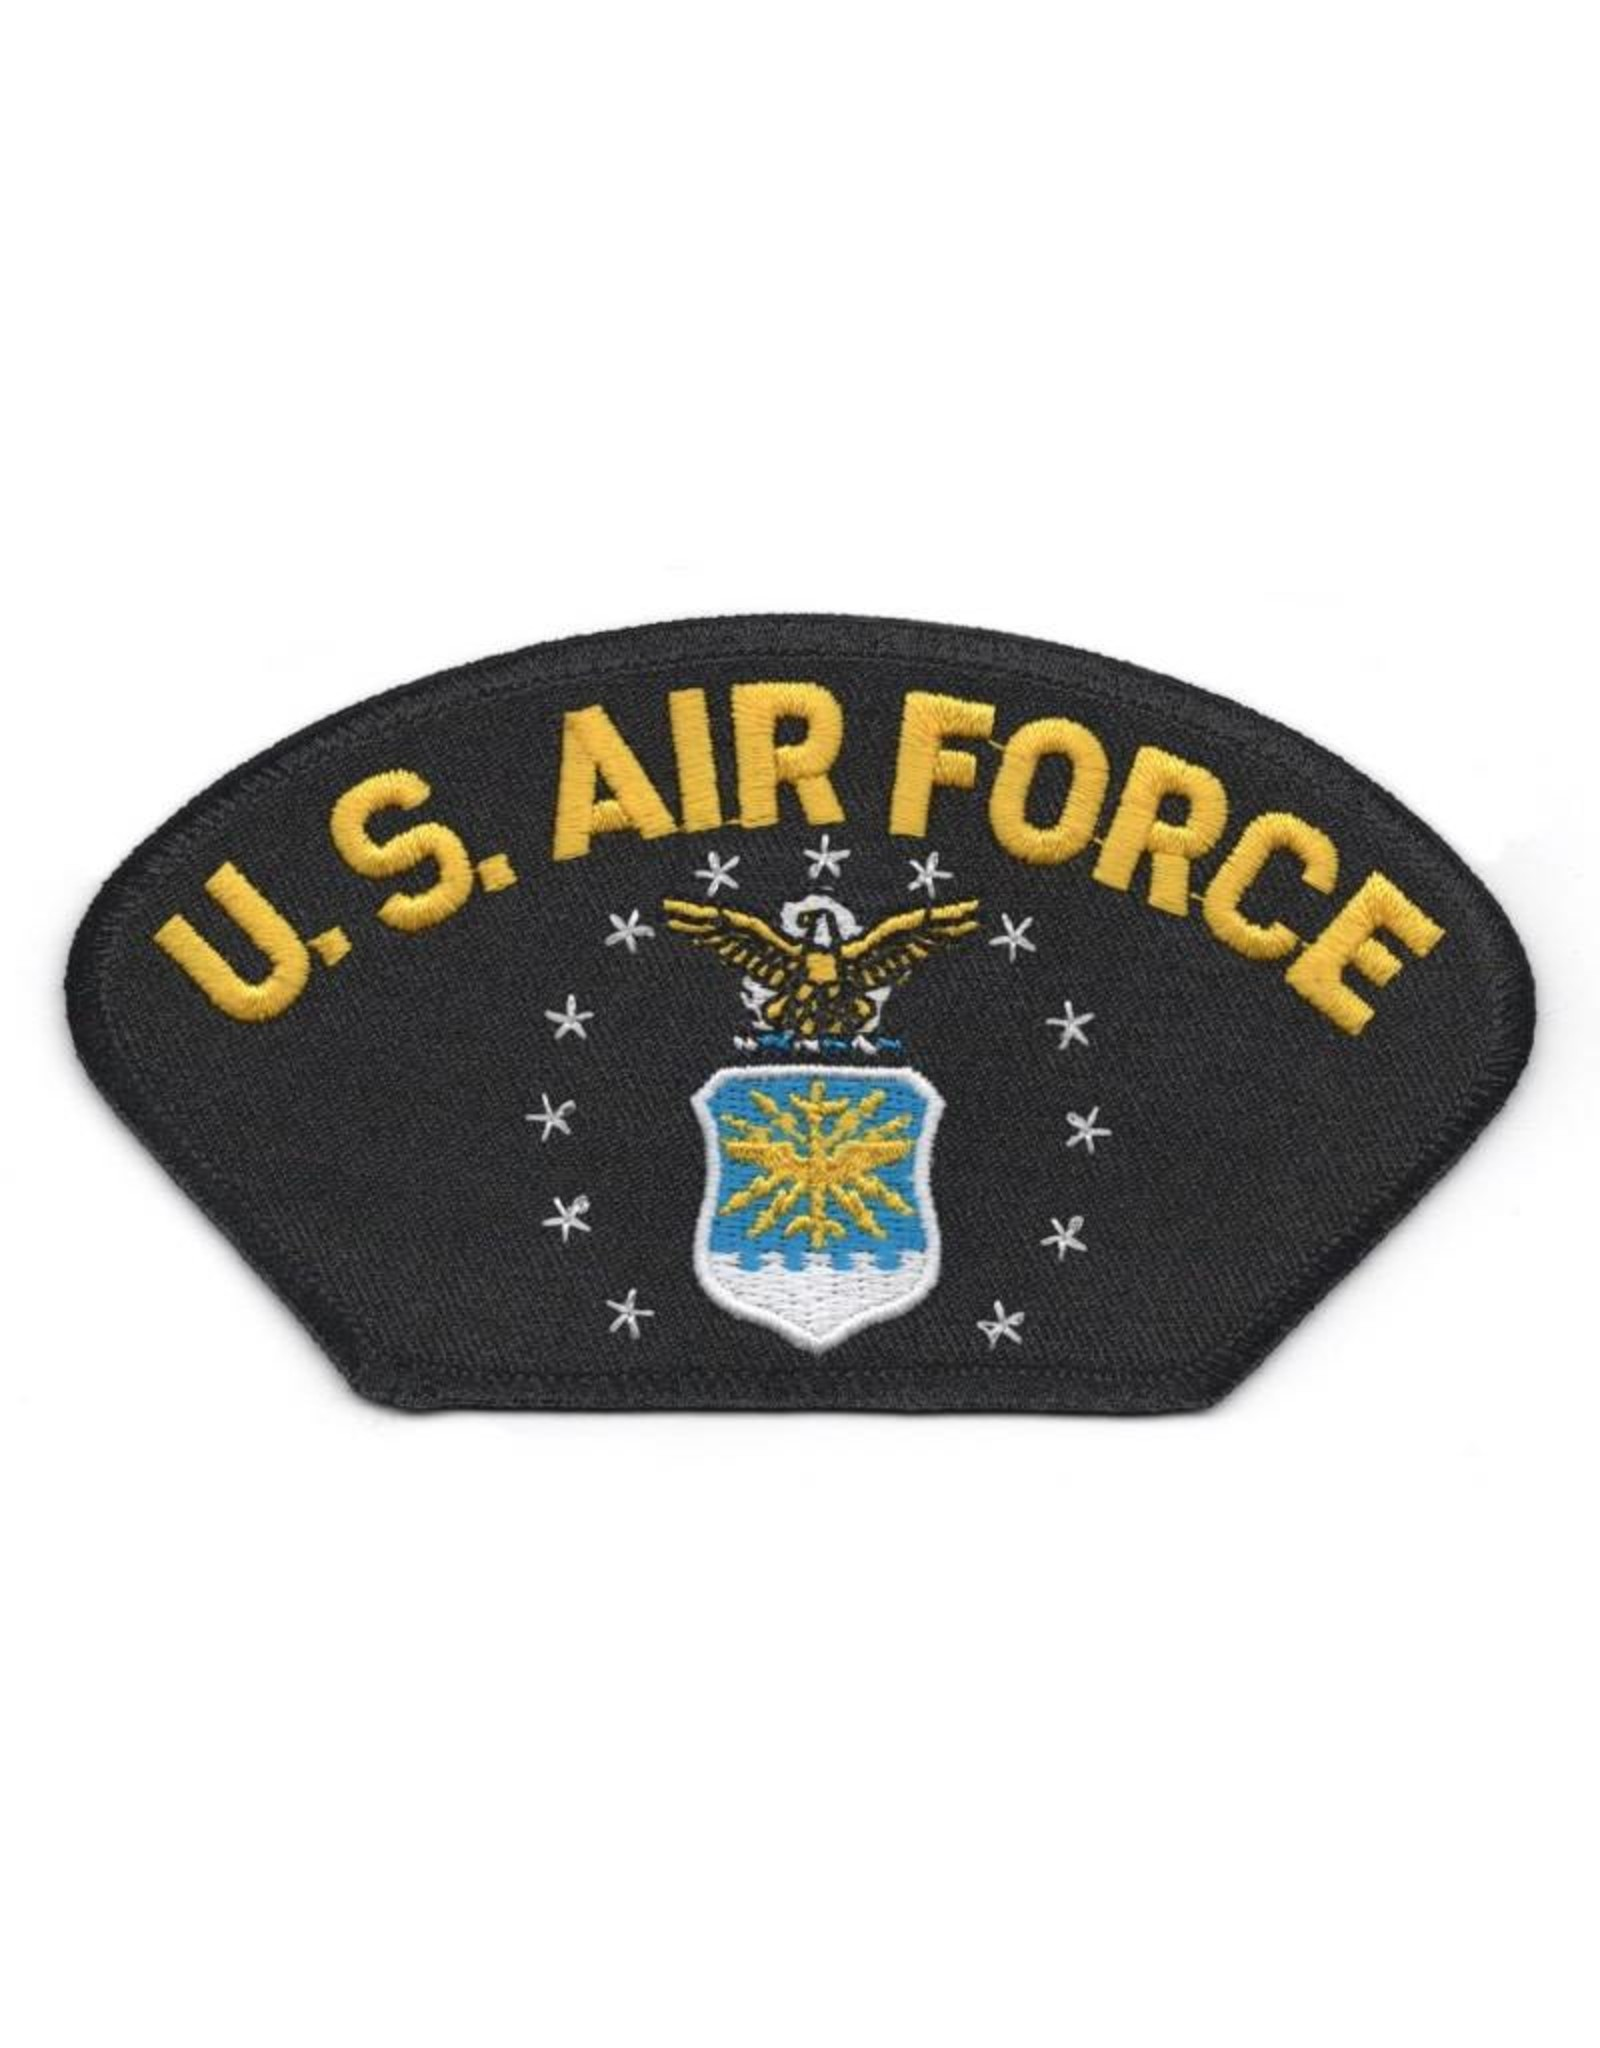 MidMil Embroidered Air Force Patch with Eagle over Shield